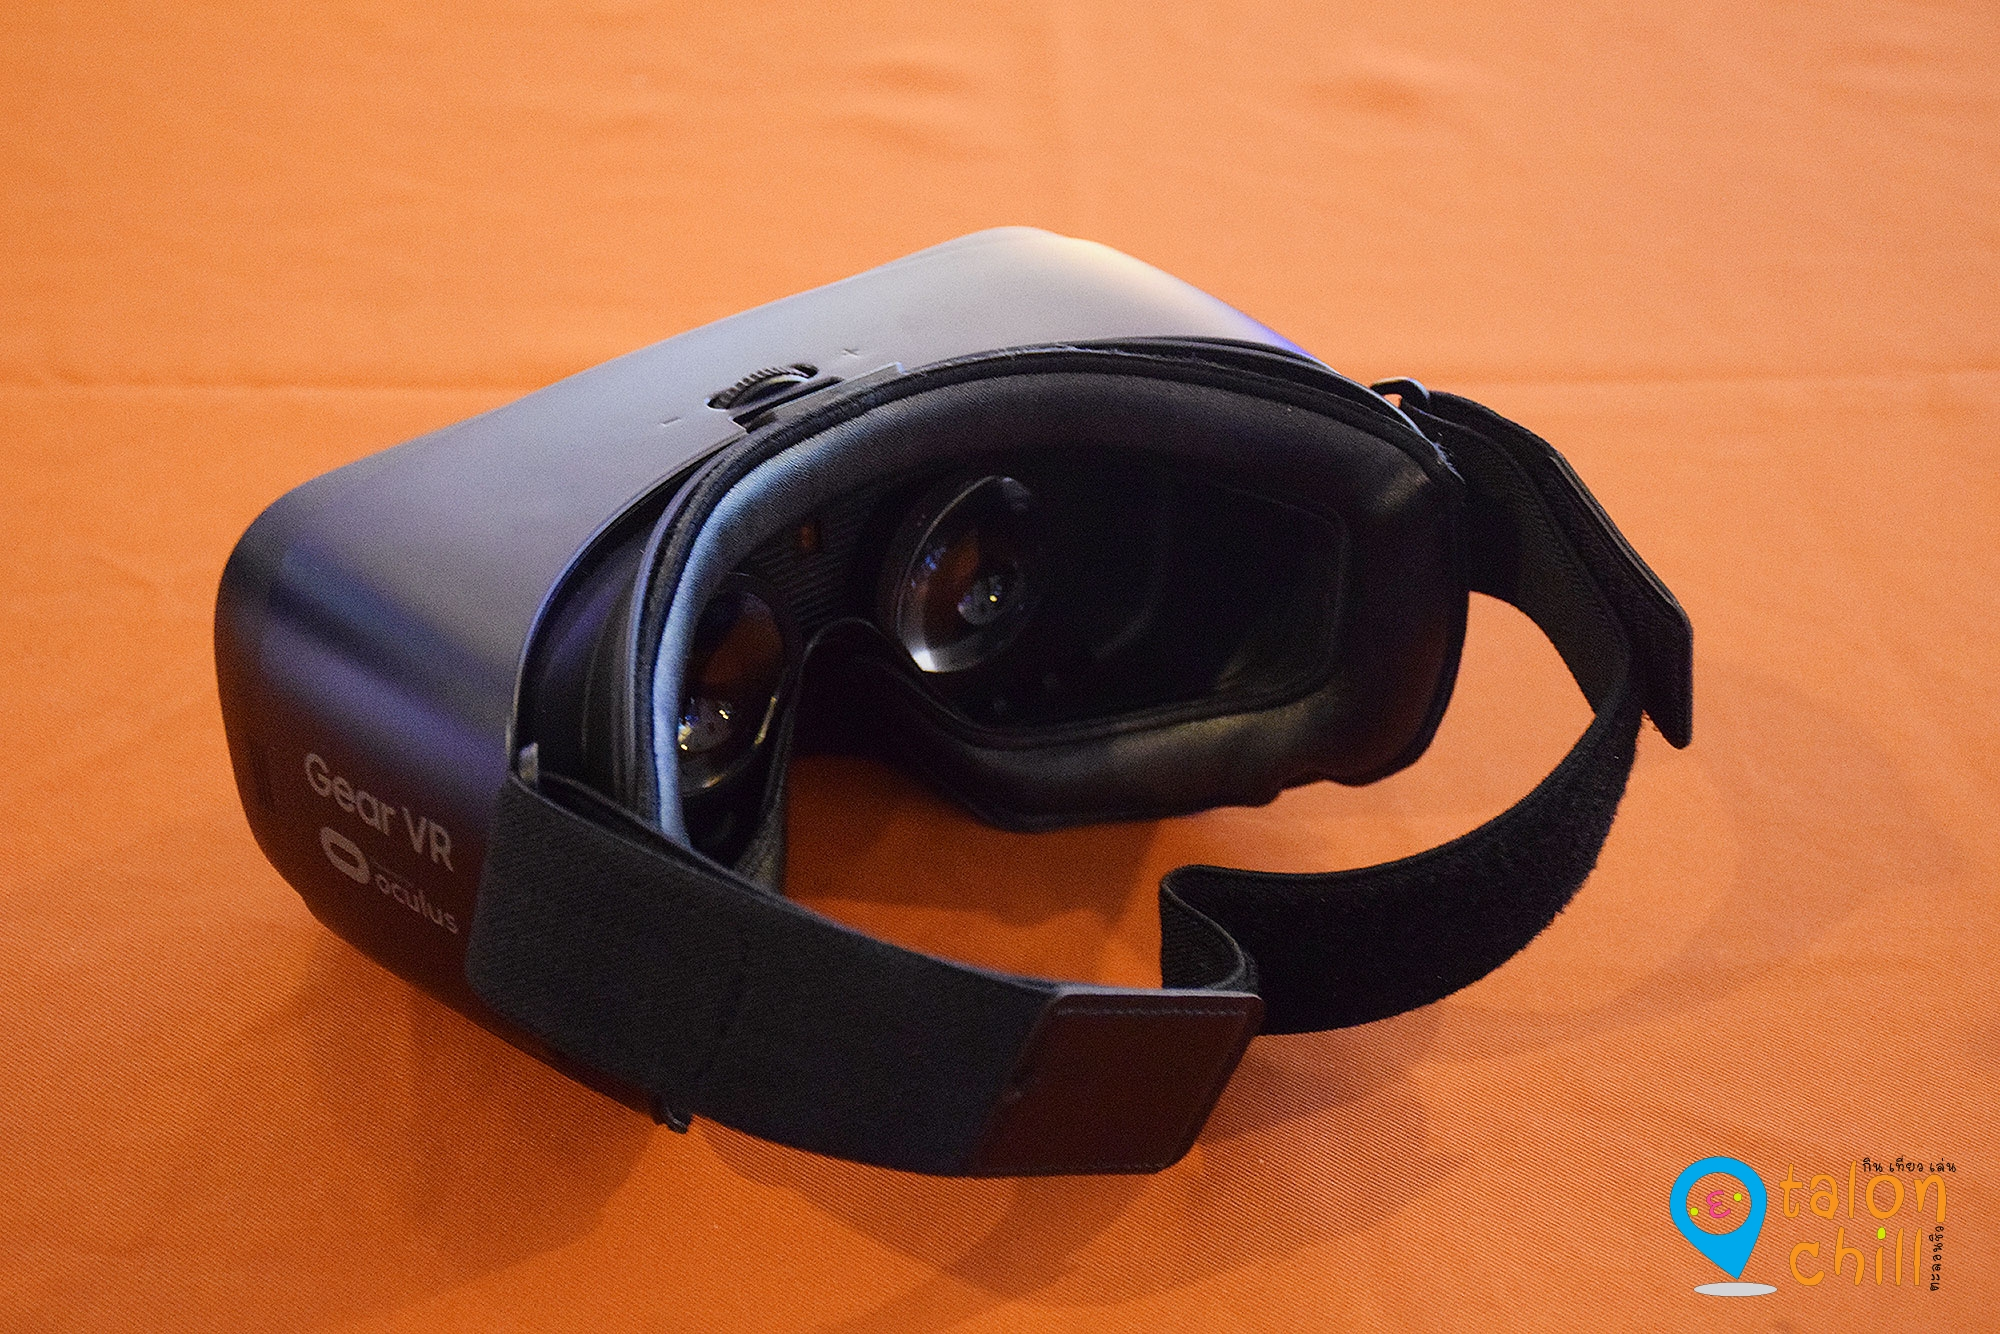 review samsung gear vr by oculus ouija 2 360 vr 17